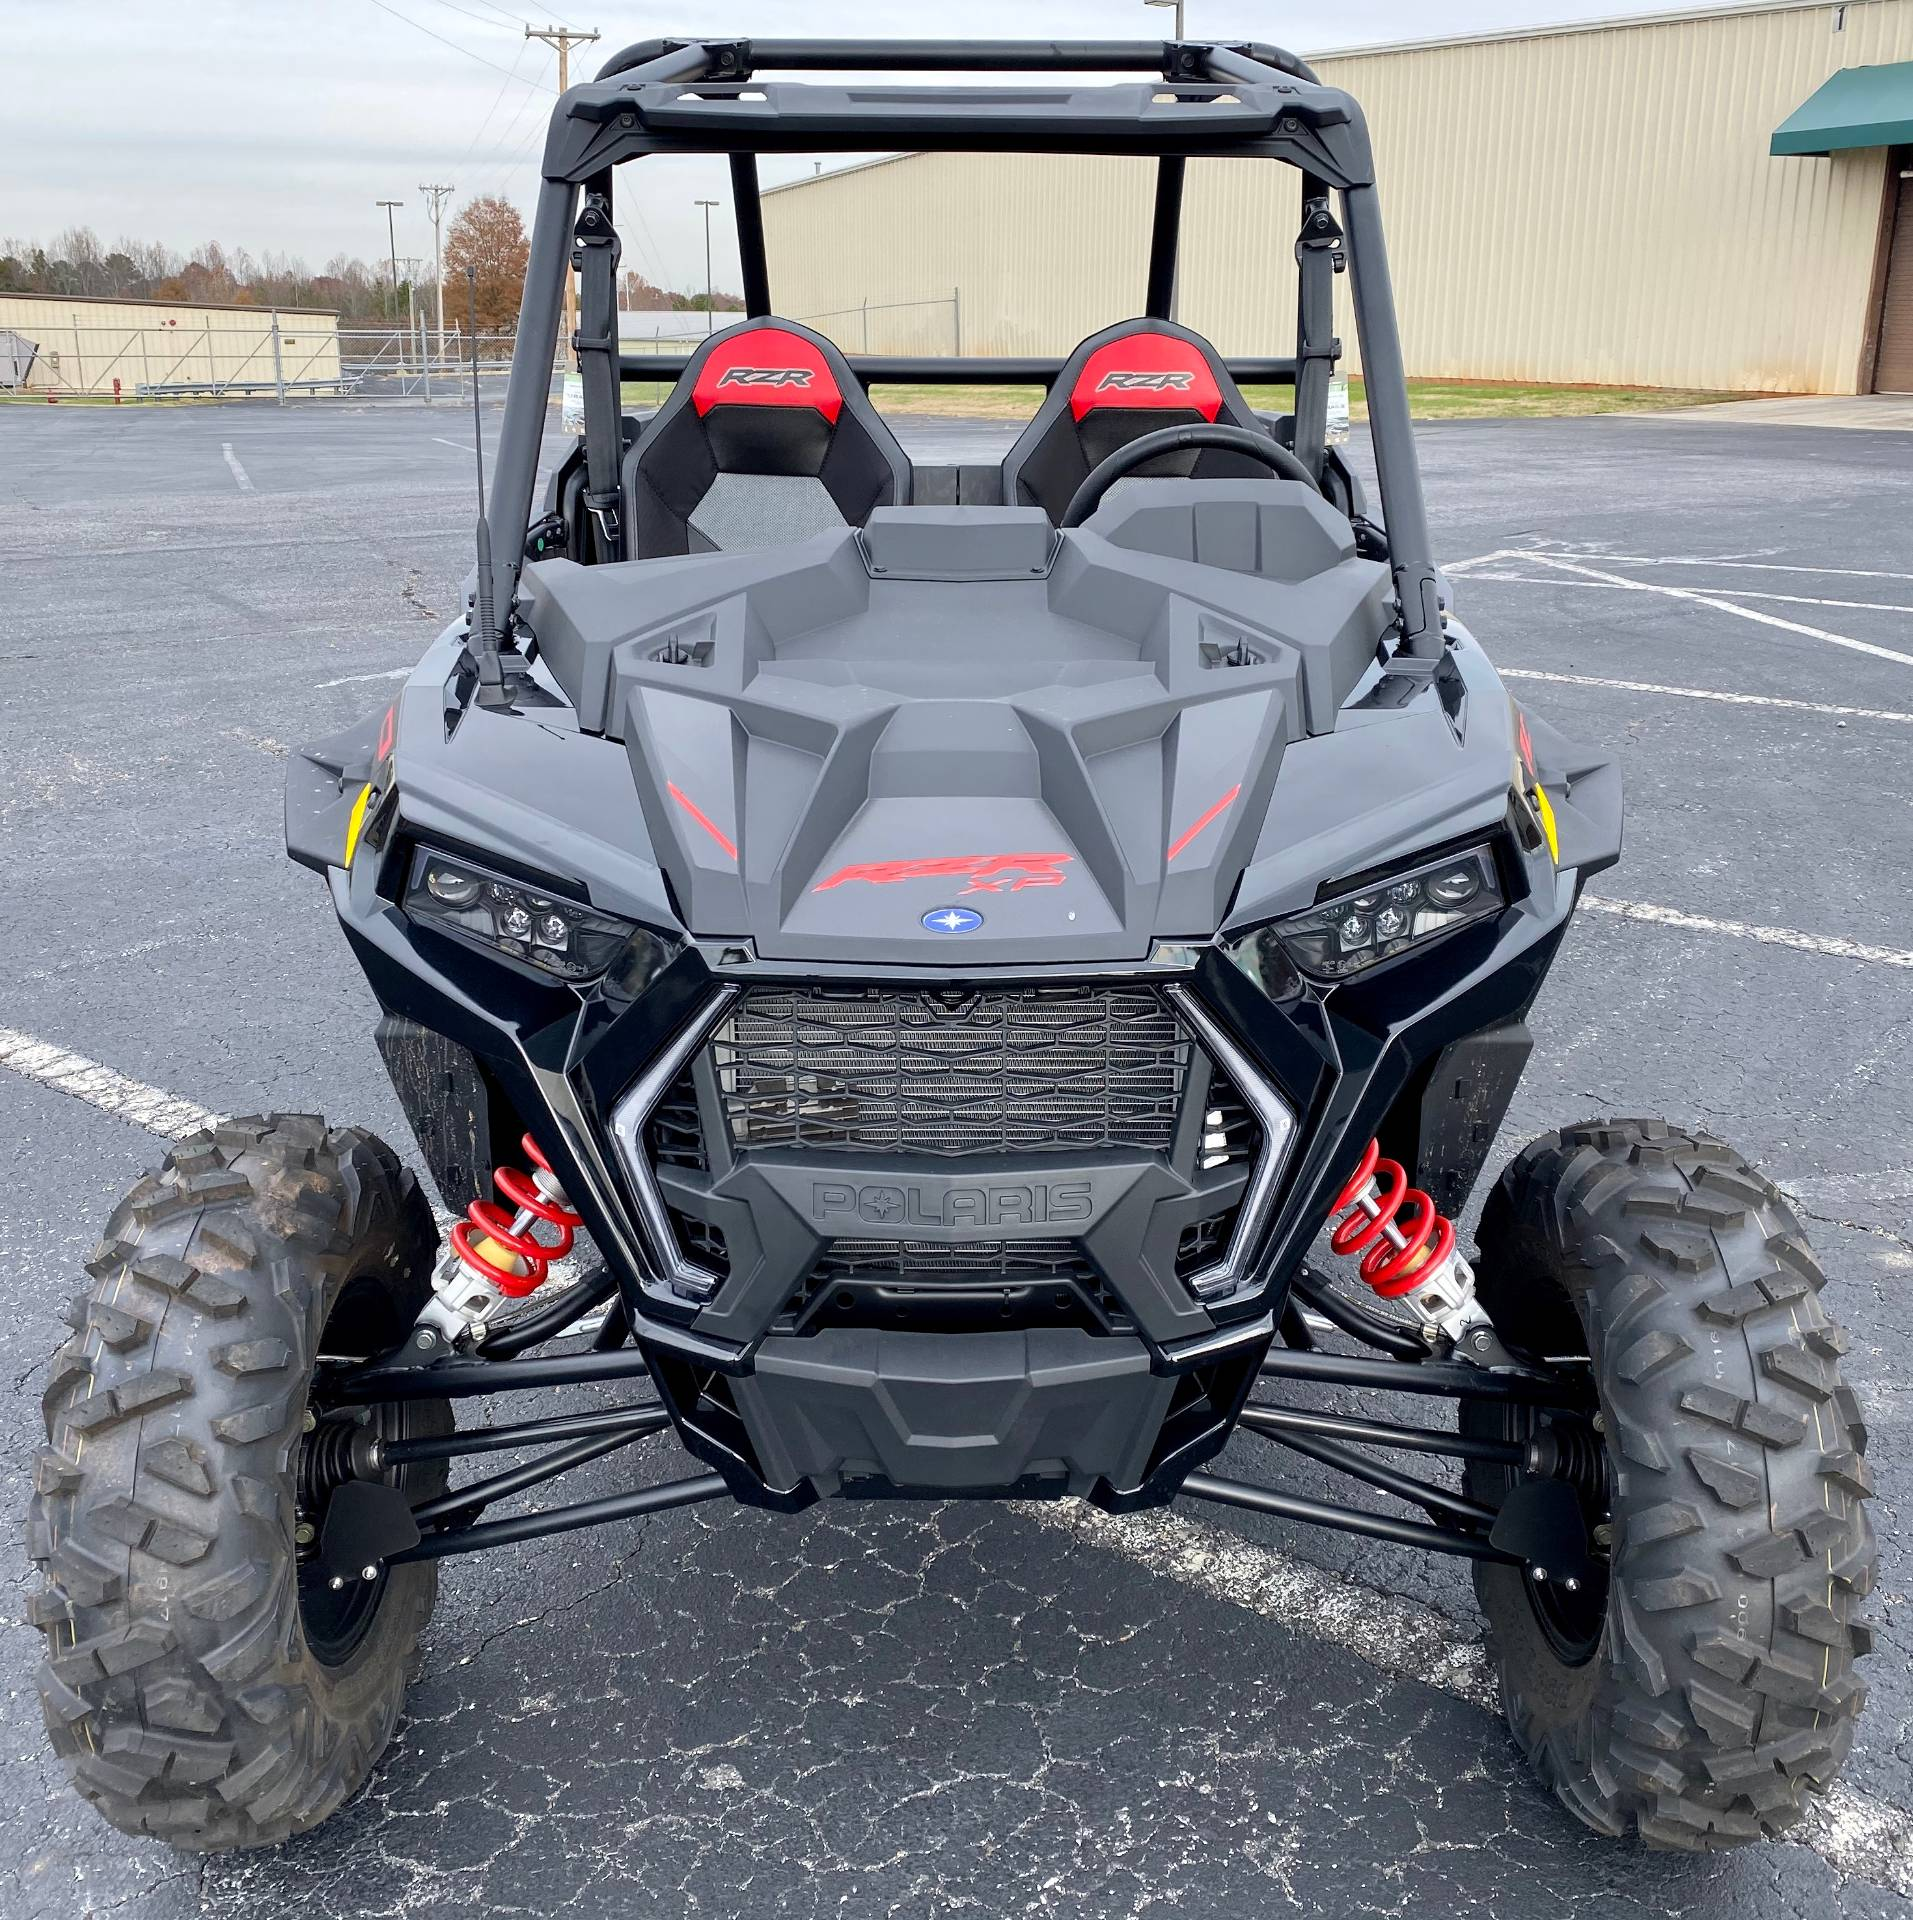 2020 Polaris RZR XP 1000 Premium in Statesville, North Carolina - Photo 2